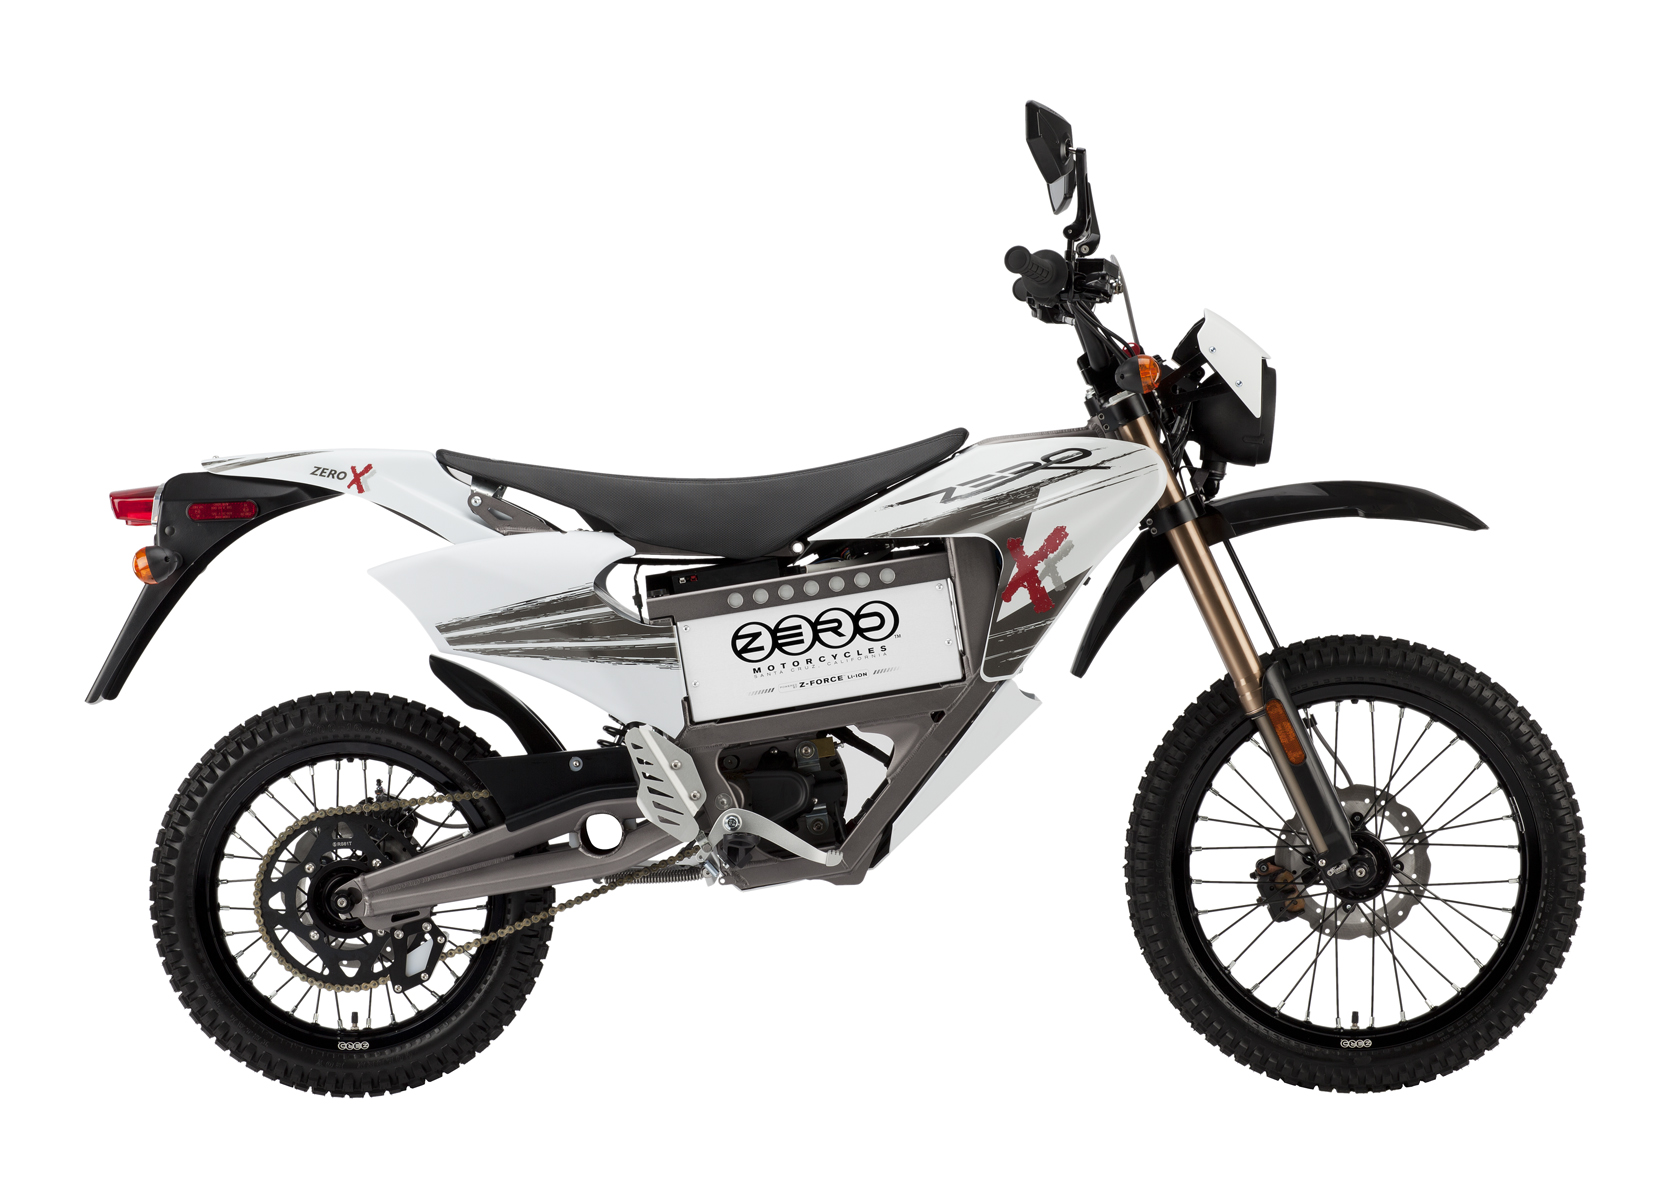 2011 Zero X Electric Motorcycle: Profile Right, Street Legal Model, White Background